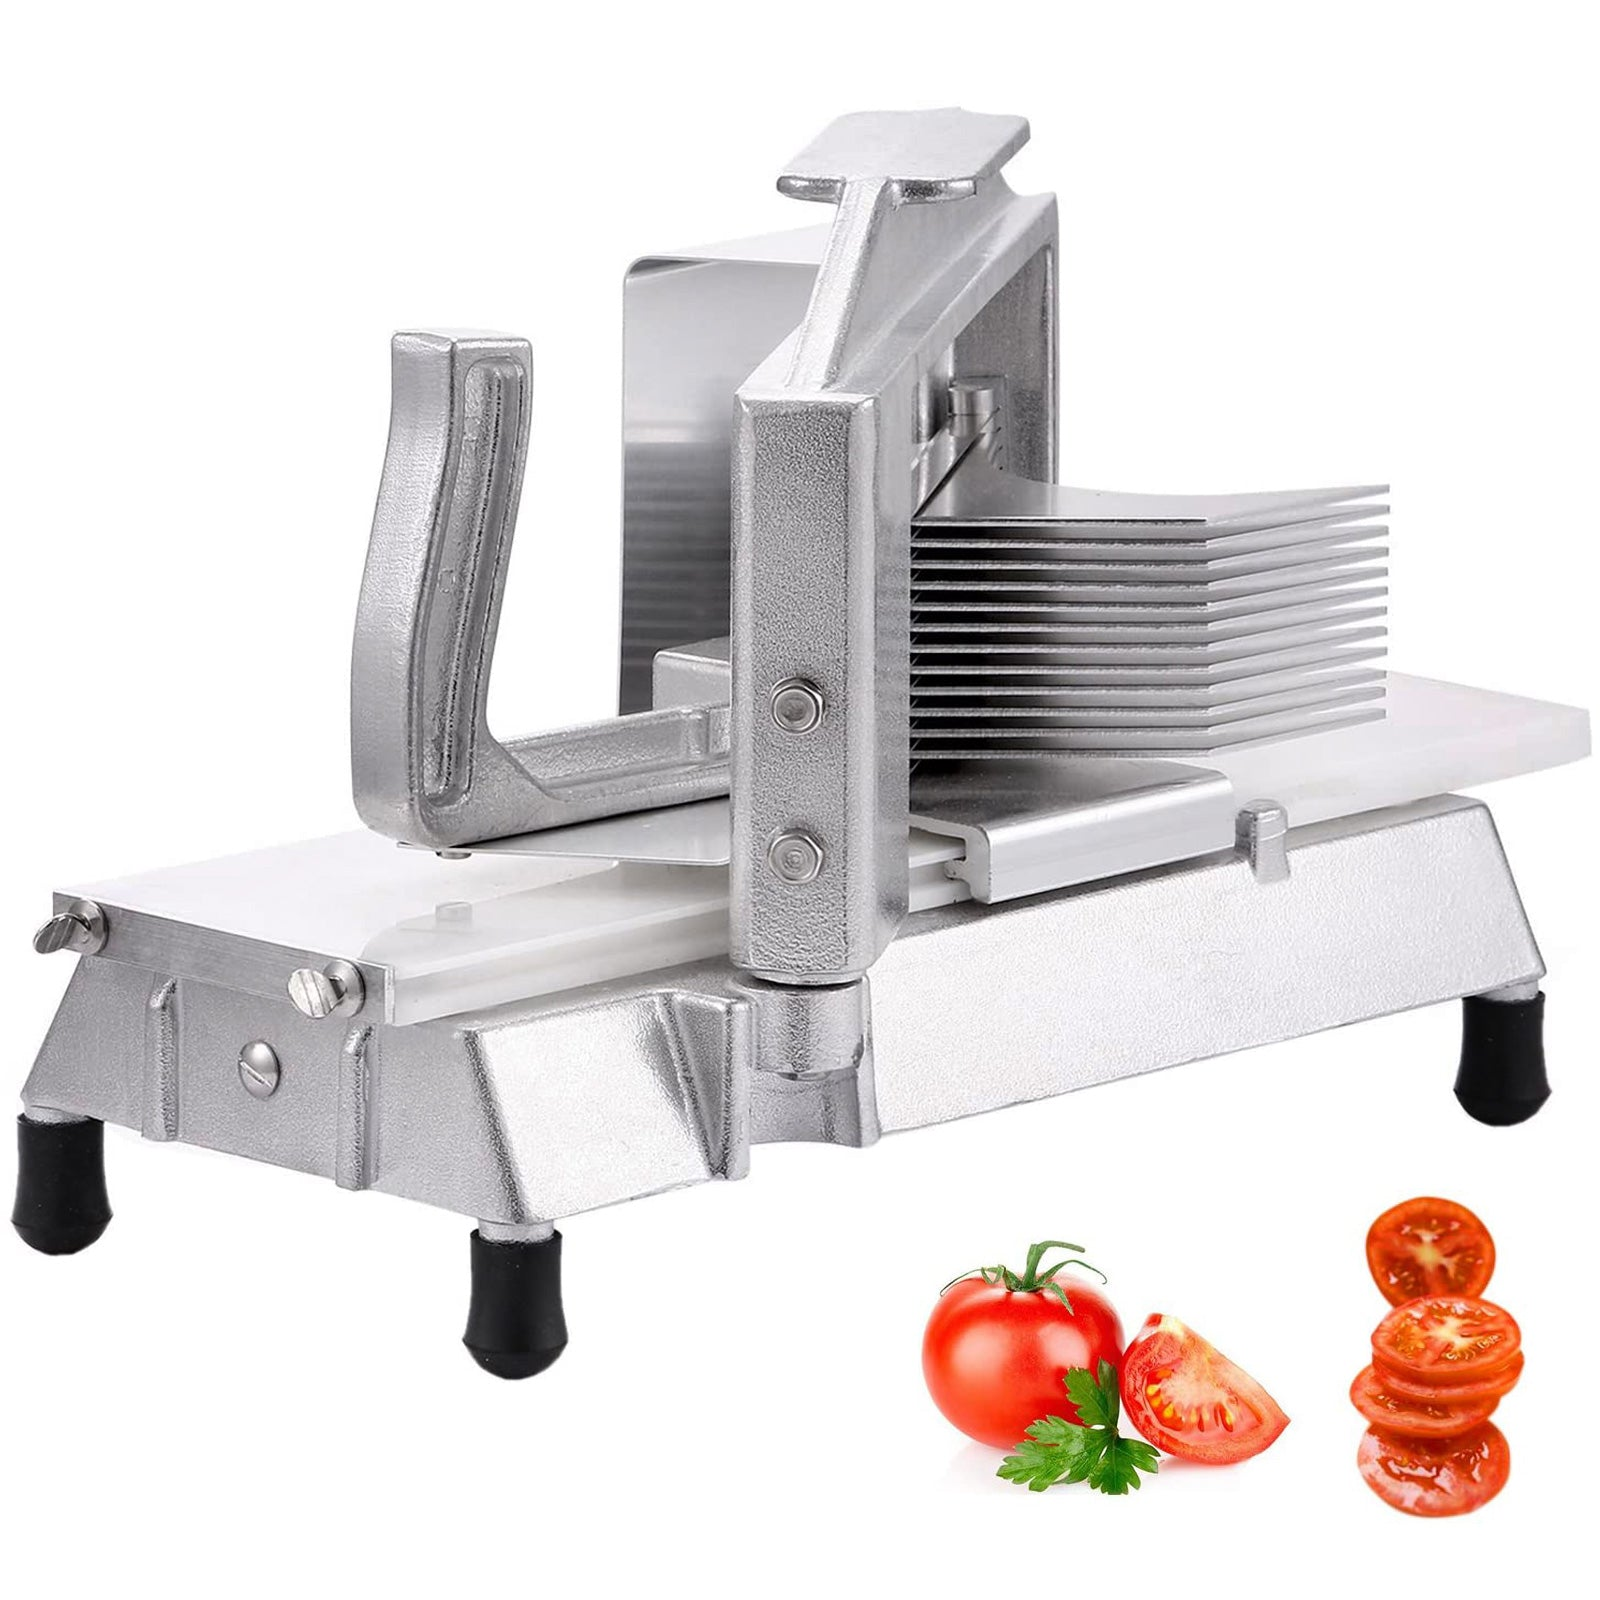 "Commercial Tomato Slicer Cutter 3/16"" Industrial Choppers Kitchen Cutting"